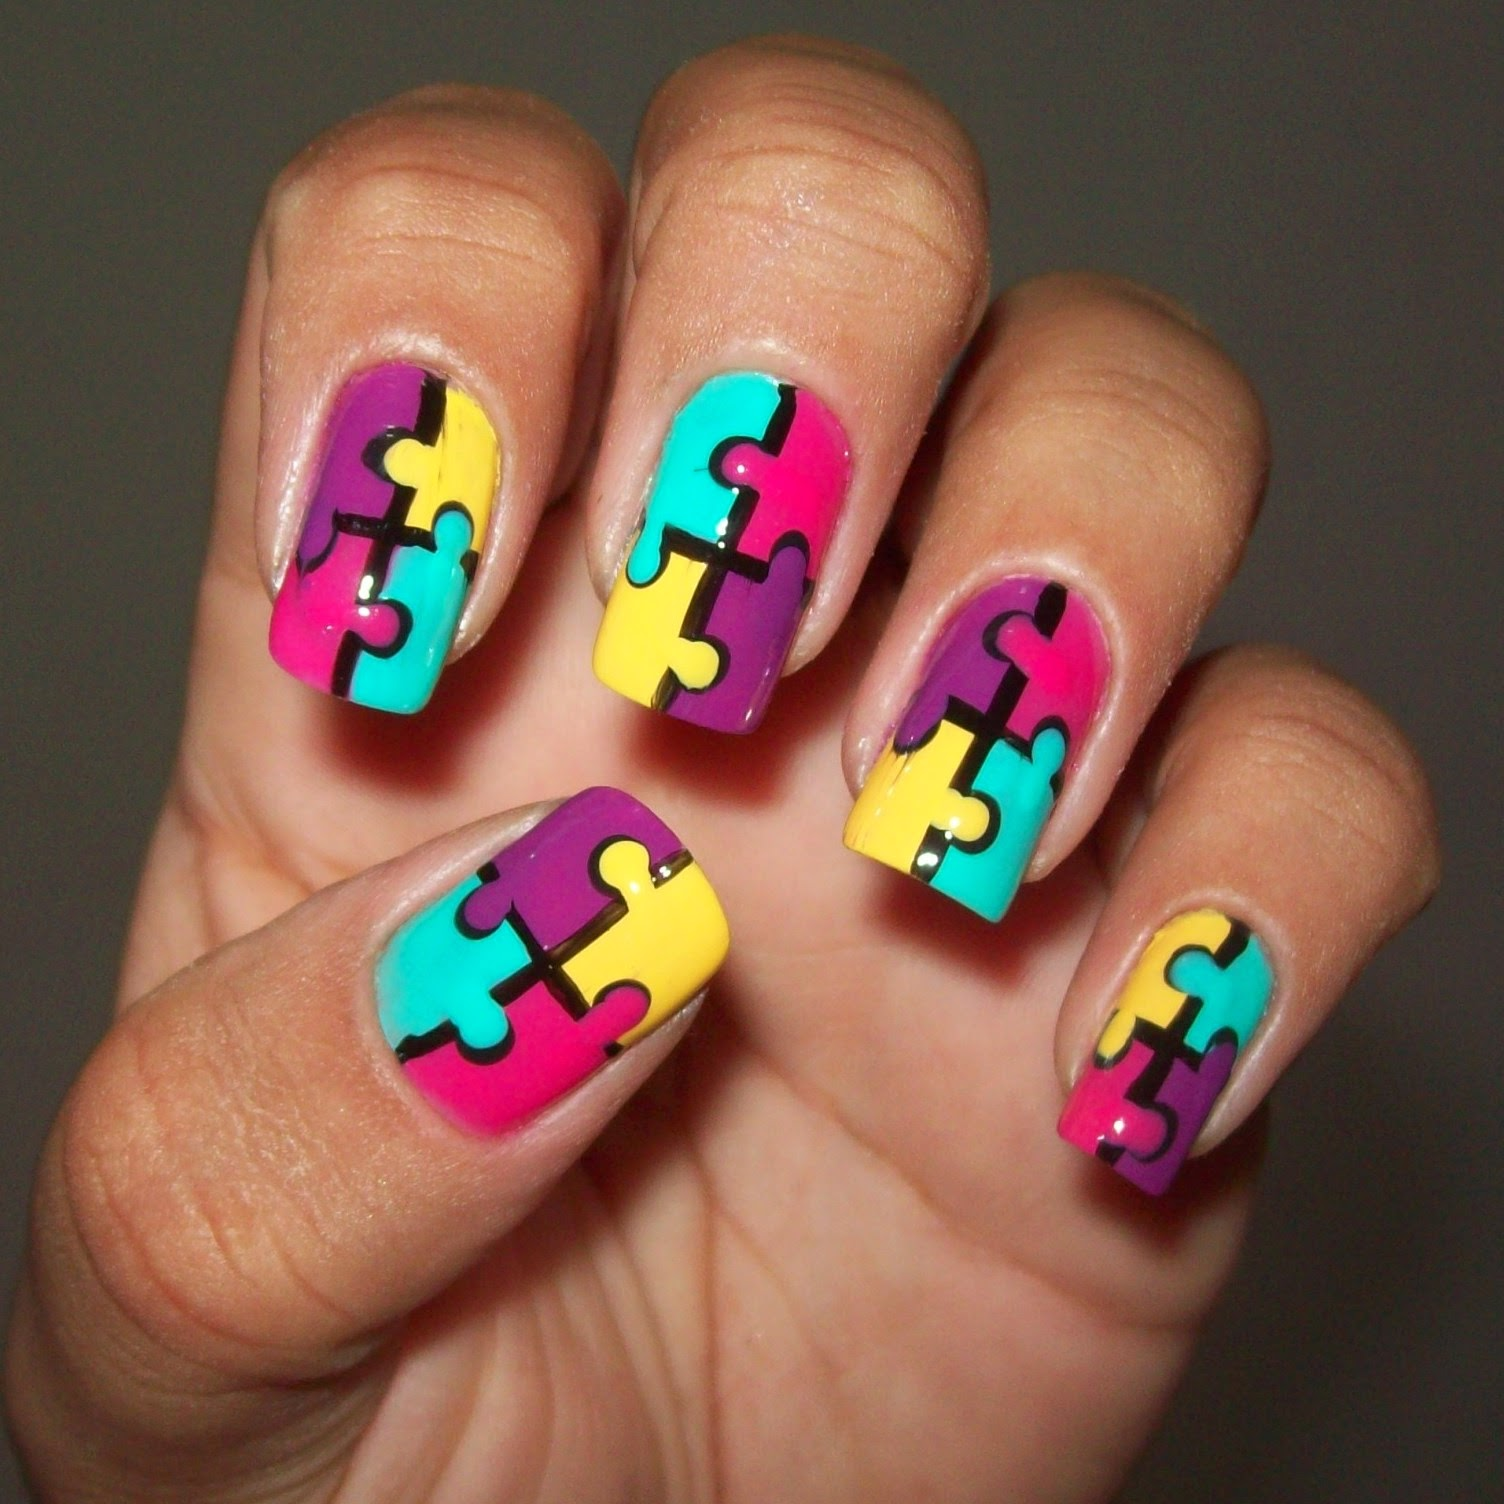 UÑAS DE LOS PIES DECORADOS - Photo 17 : Foto - enfemenino.com